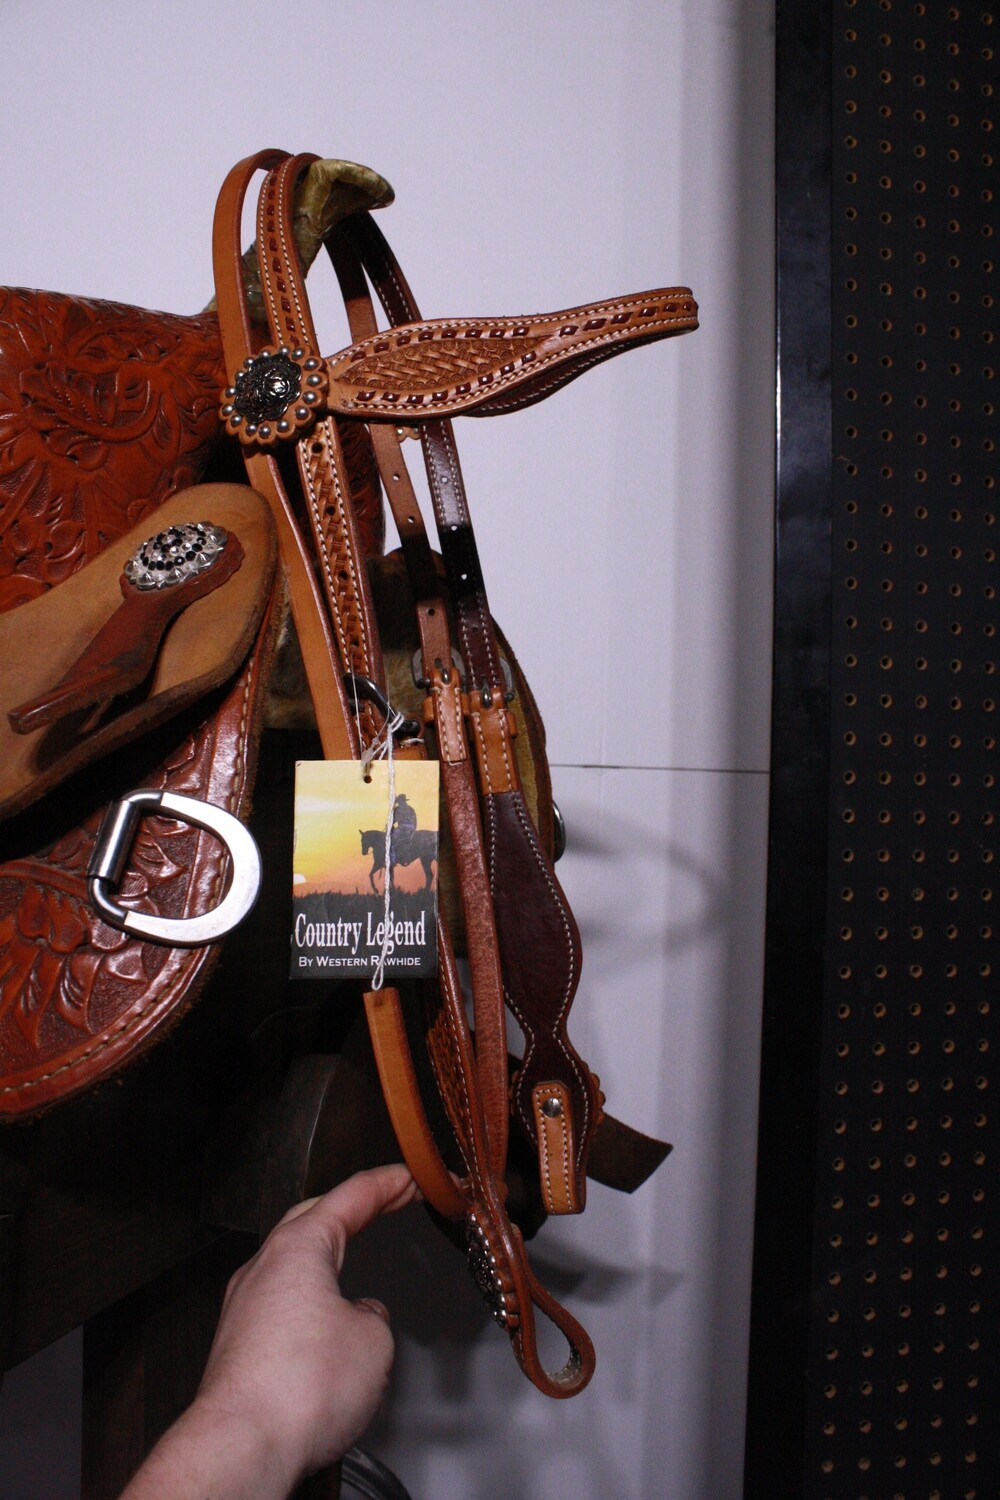 Country Legend Brow Band Light Oil Head Stall